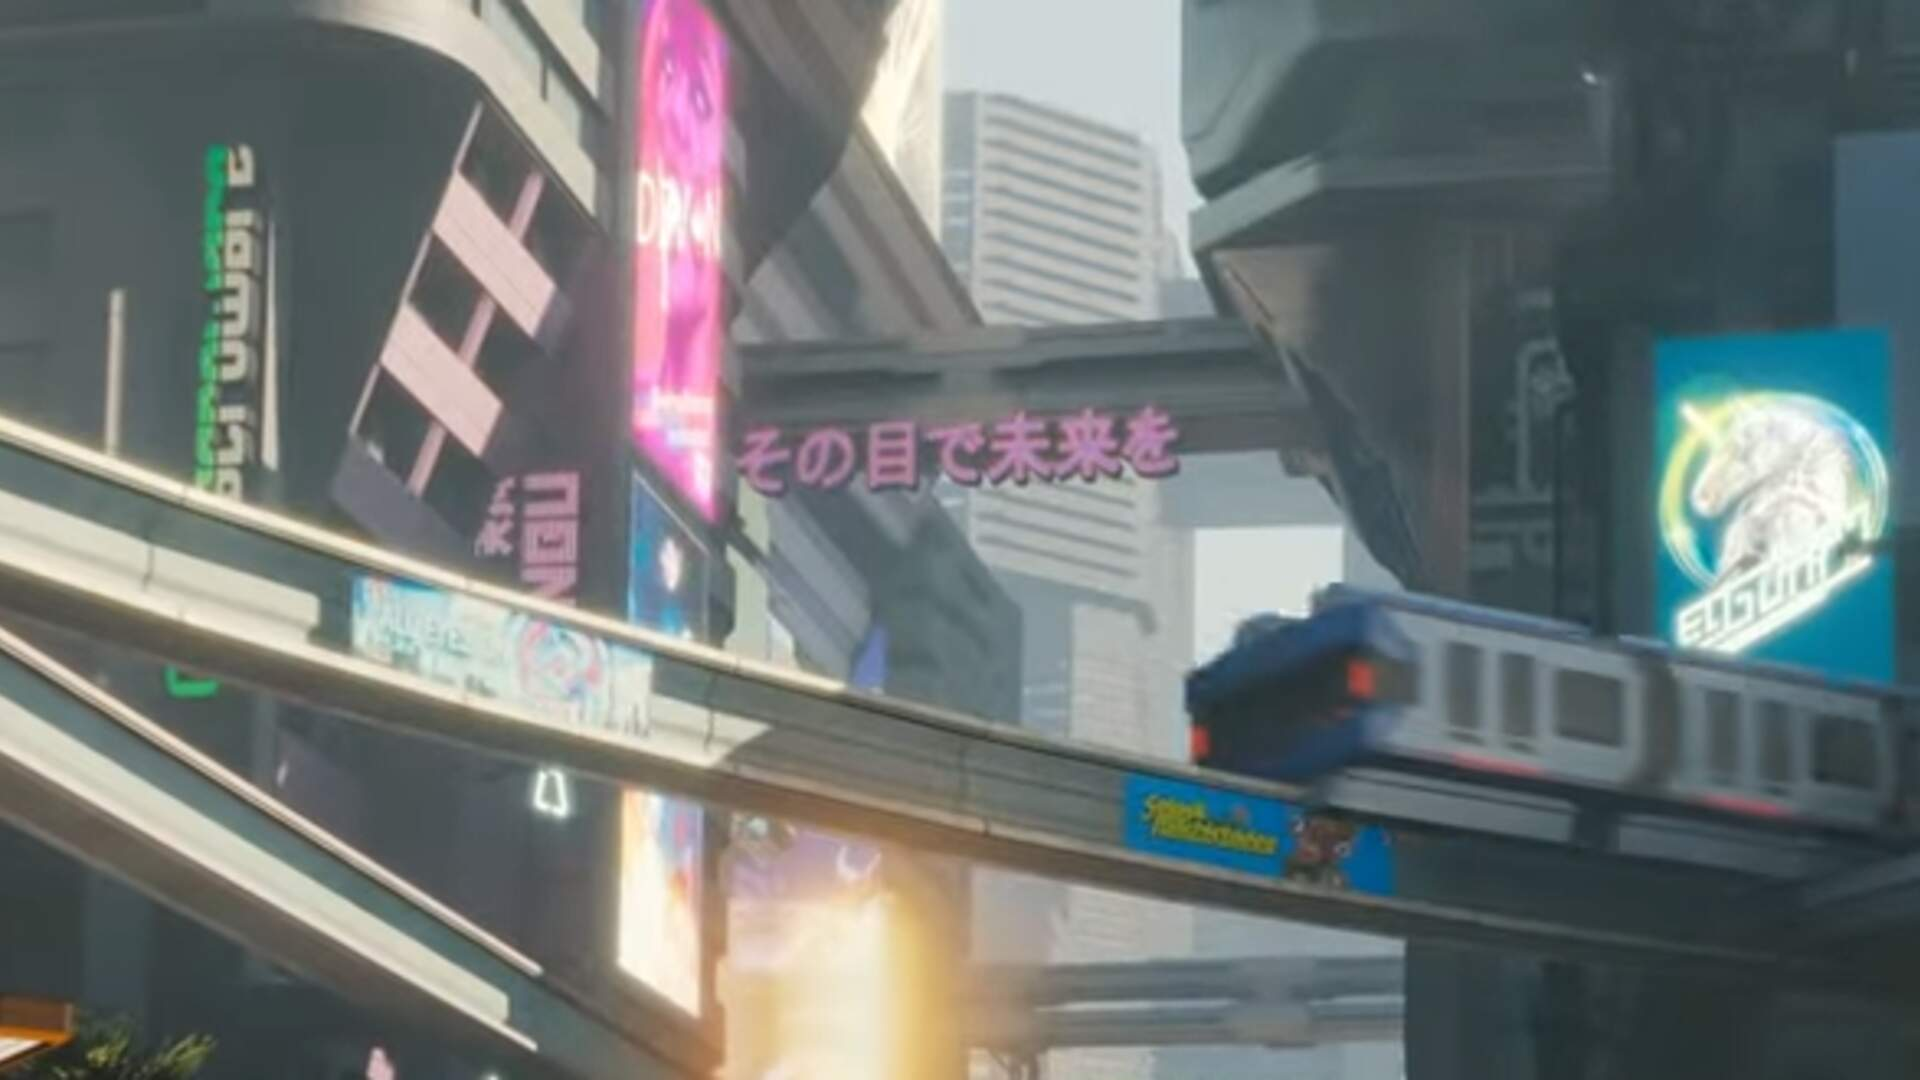 Cyberpunk 2077 is Single-Player, but Multiplayer is in R&D